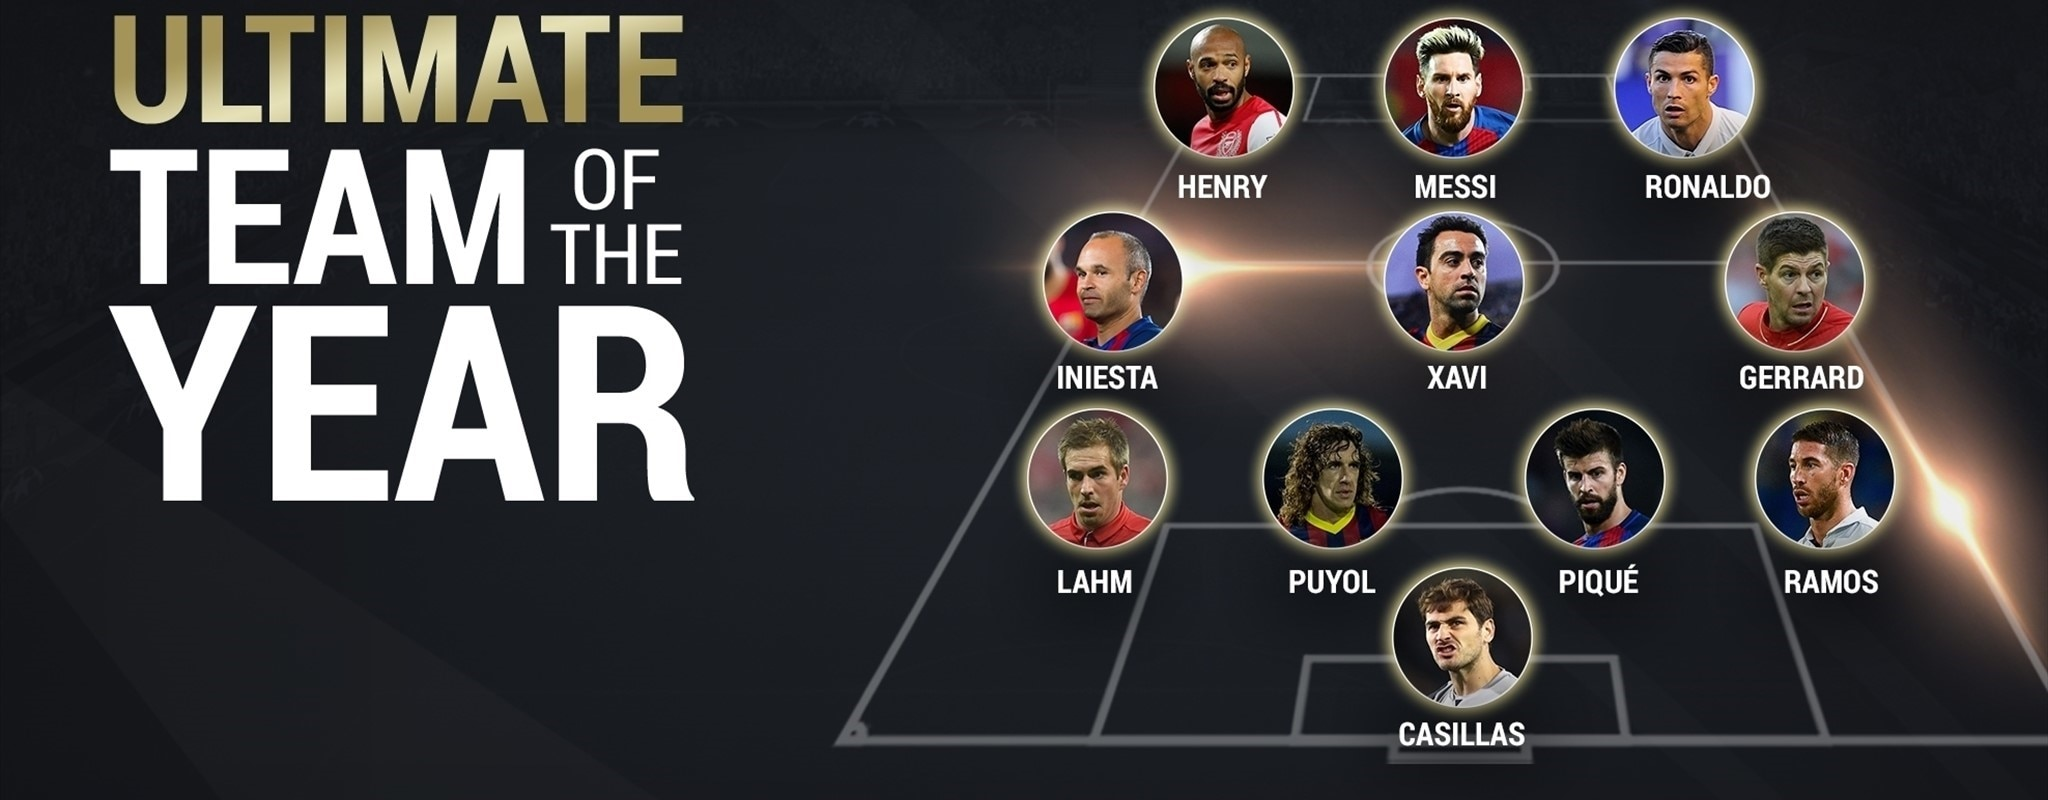 Ultimate UEFA.com fans' Team of the Year: the all-time XI